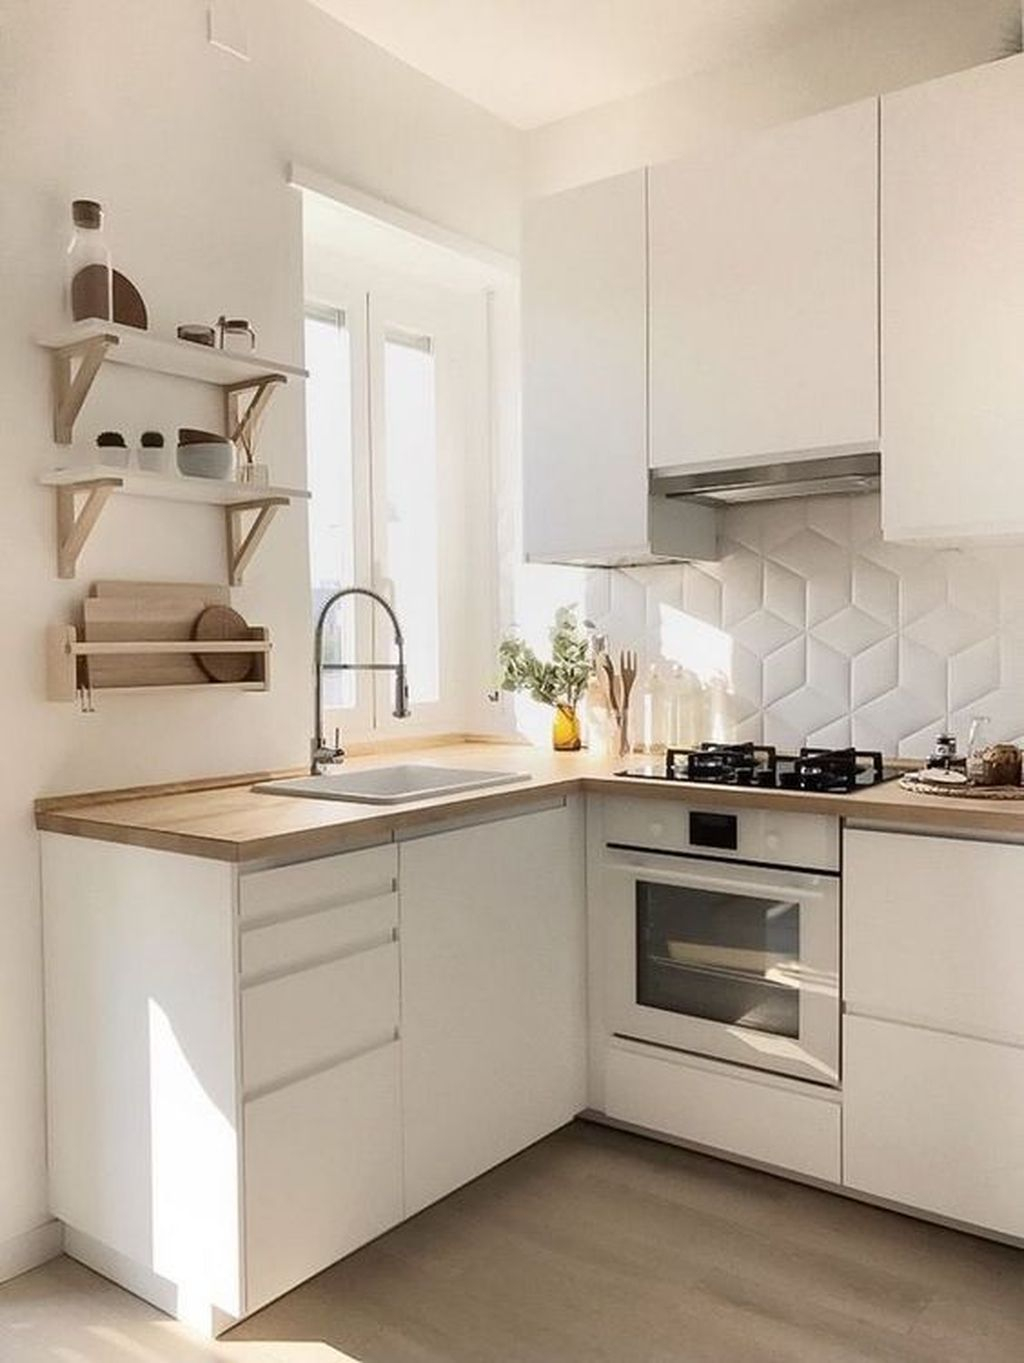 Best Tiny Kitchen Design Ideas For Your Small Space Inspiration 04